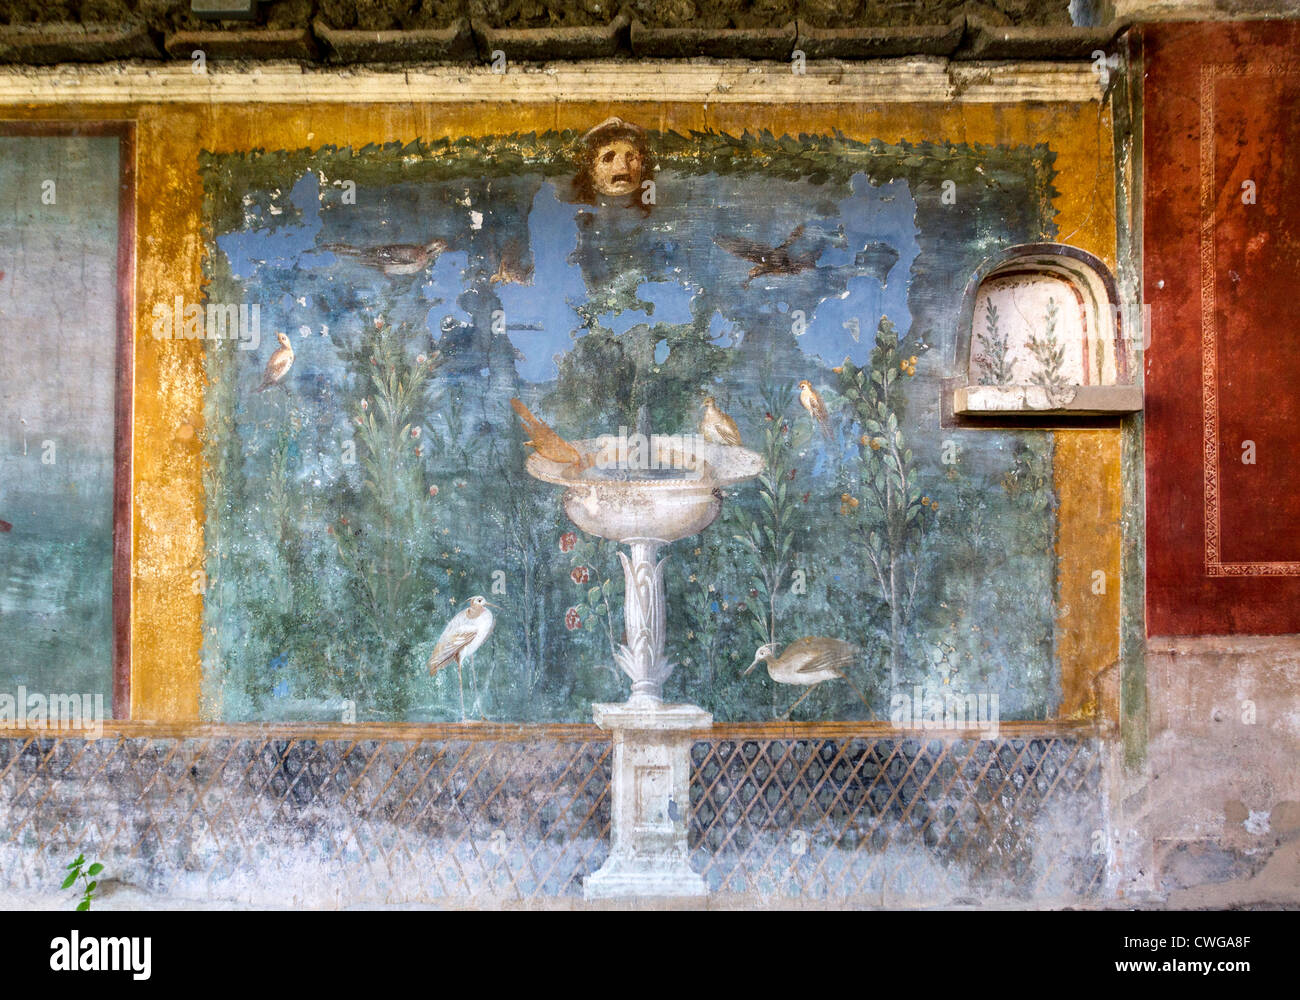 Ancient Roman Mural At The Roman City Of Pompeii Depicting